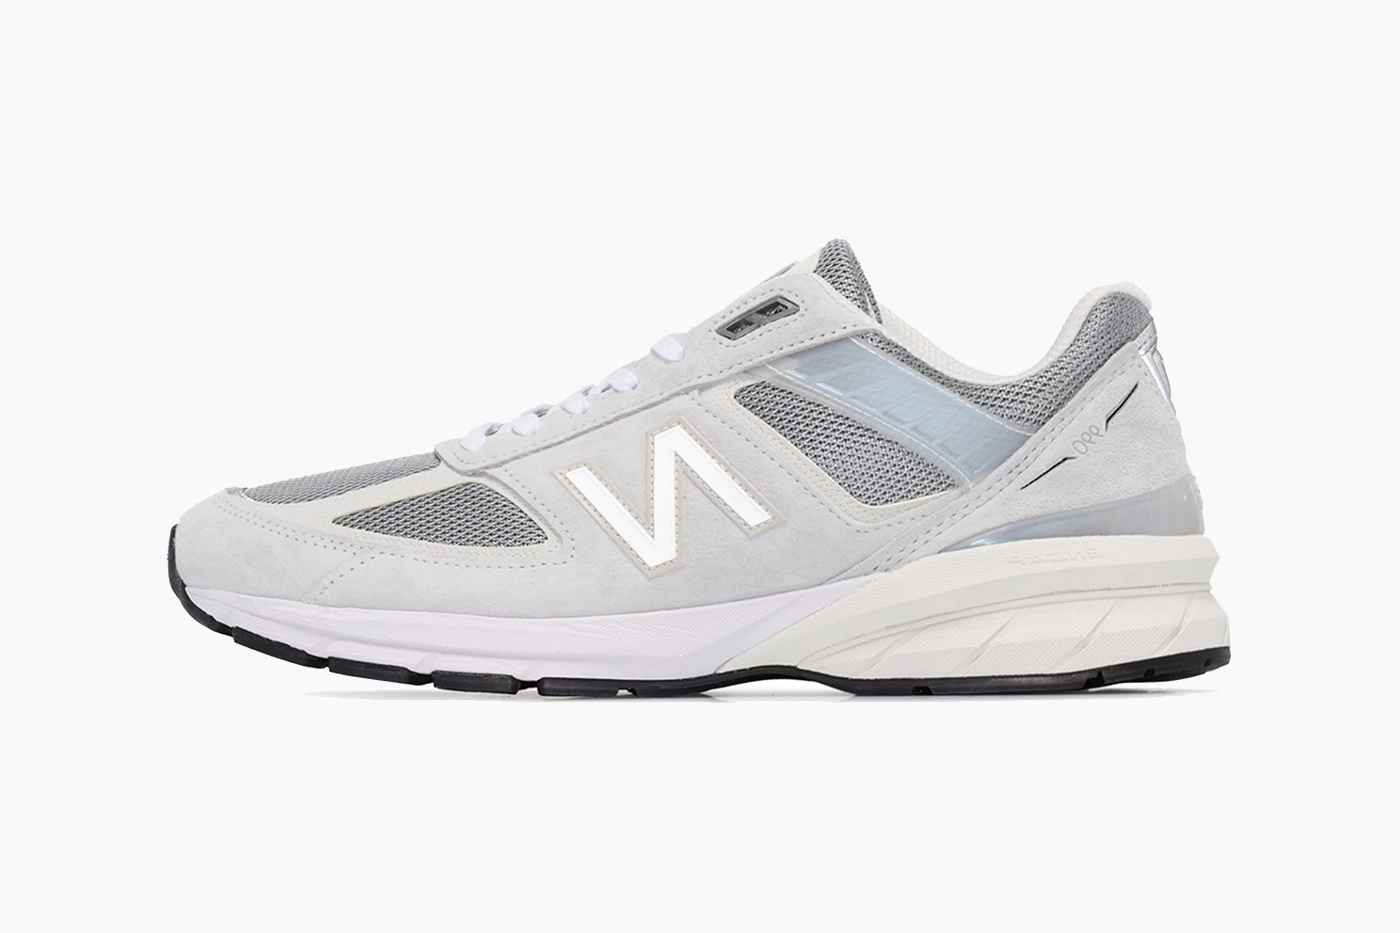 New Balance Grey M990 Reflective Sneakers